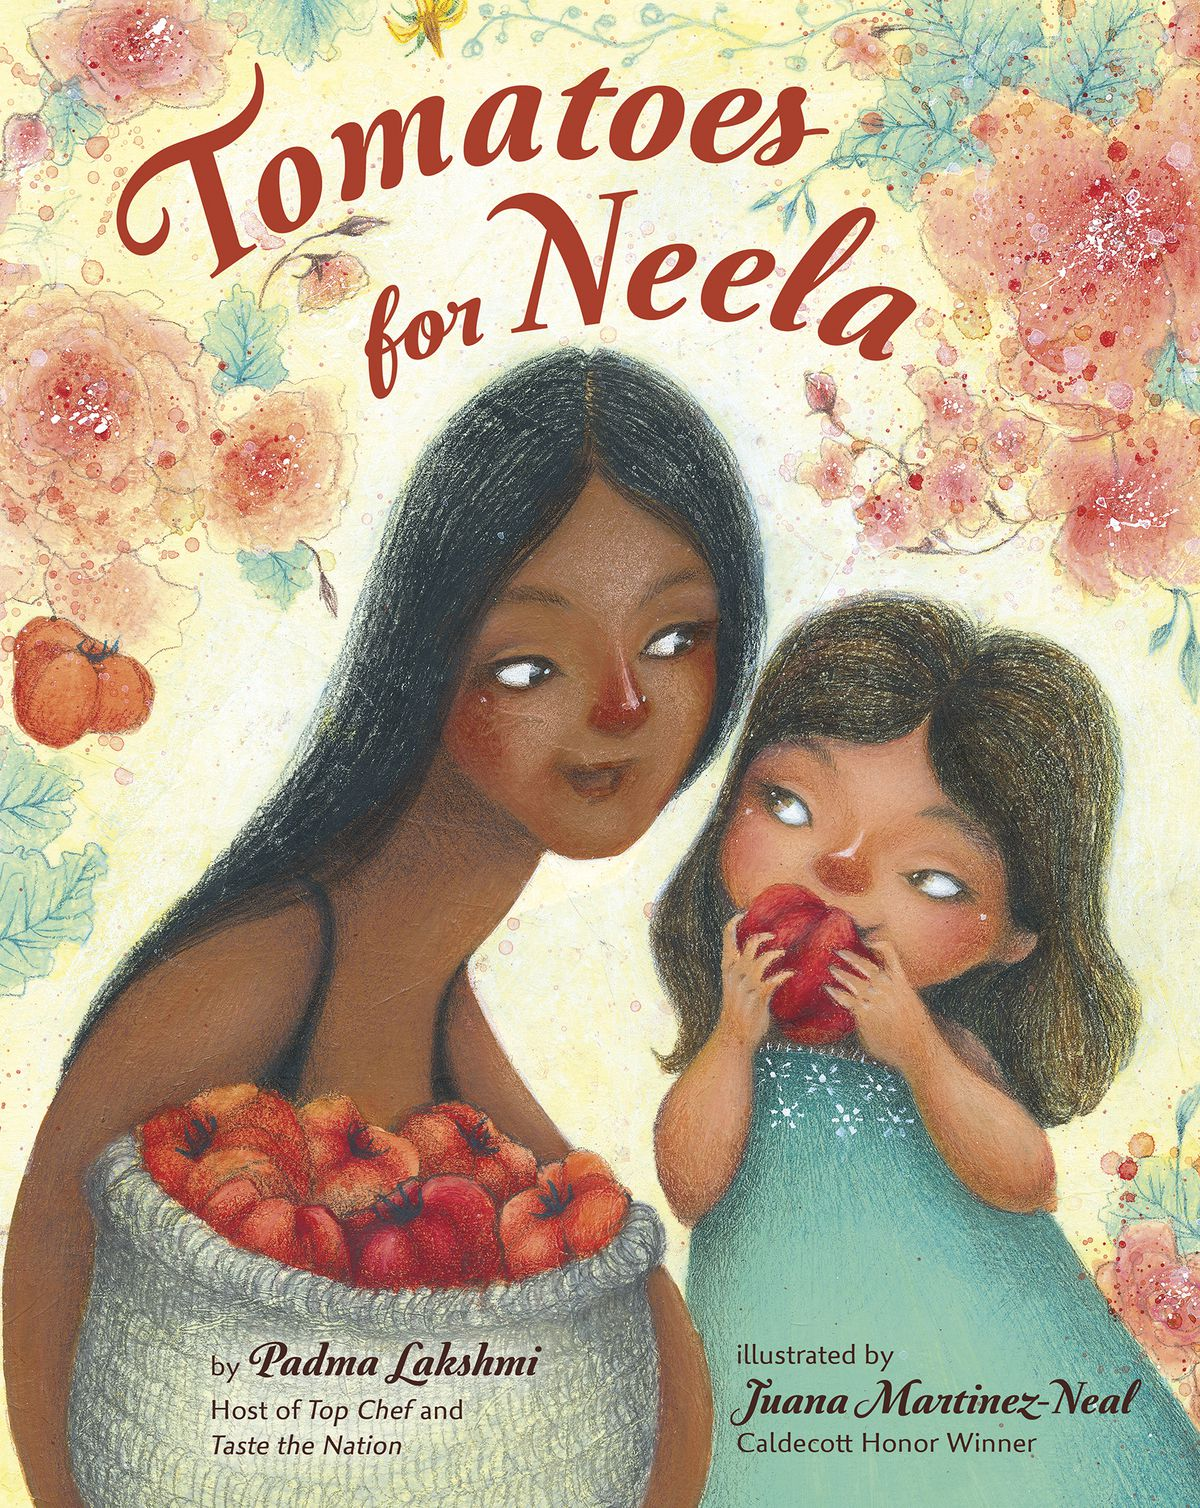 """This cover image released by Viking Books for Young Readers shows """"Tomatoes for Neela,"""" a children's book written by Padma Lakshmi, with illustrations by Juana Martinez-Neal. The book mixes the author's memories of cooking with her family with practical food advice, a nod to farmworkers and even a pair of recipes."""